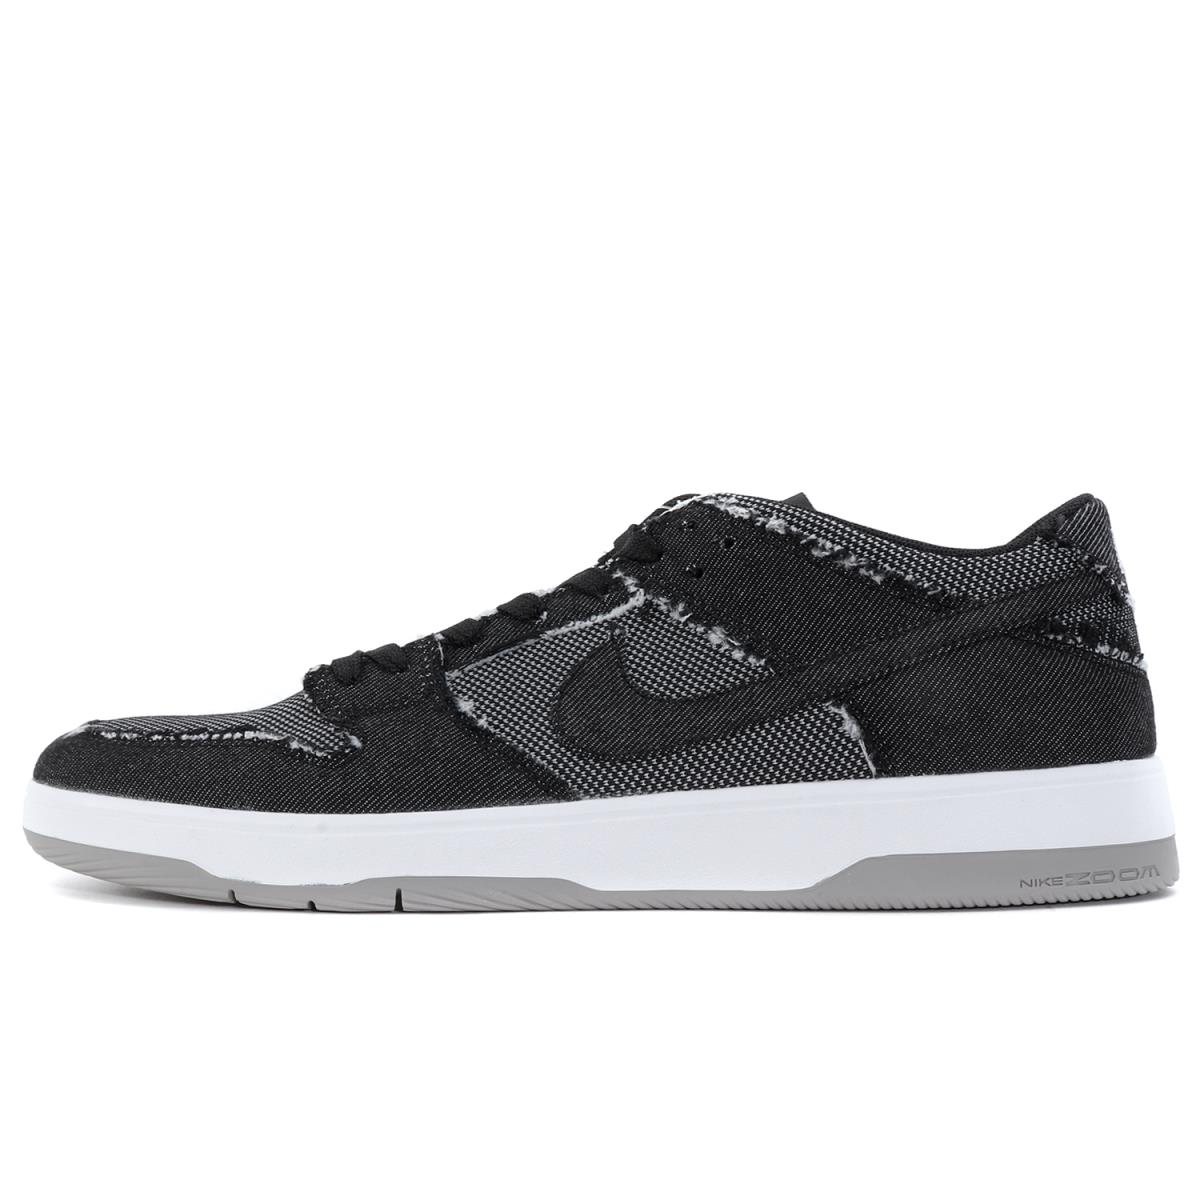 NIKE (ナイキ) ×MEDICOM TOY SB ZOOM DUNK LOW ELITE QS BE@RBRICK DENIM ブラック US10(28cm) 【K1856】【あす楽☆対応可】